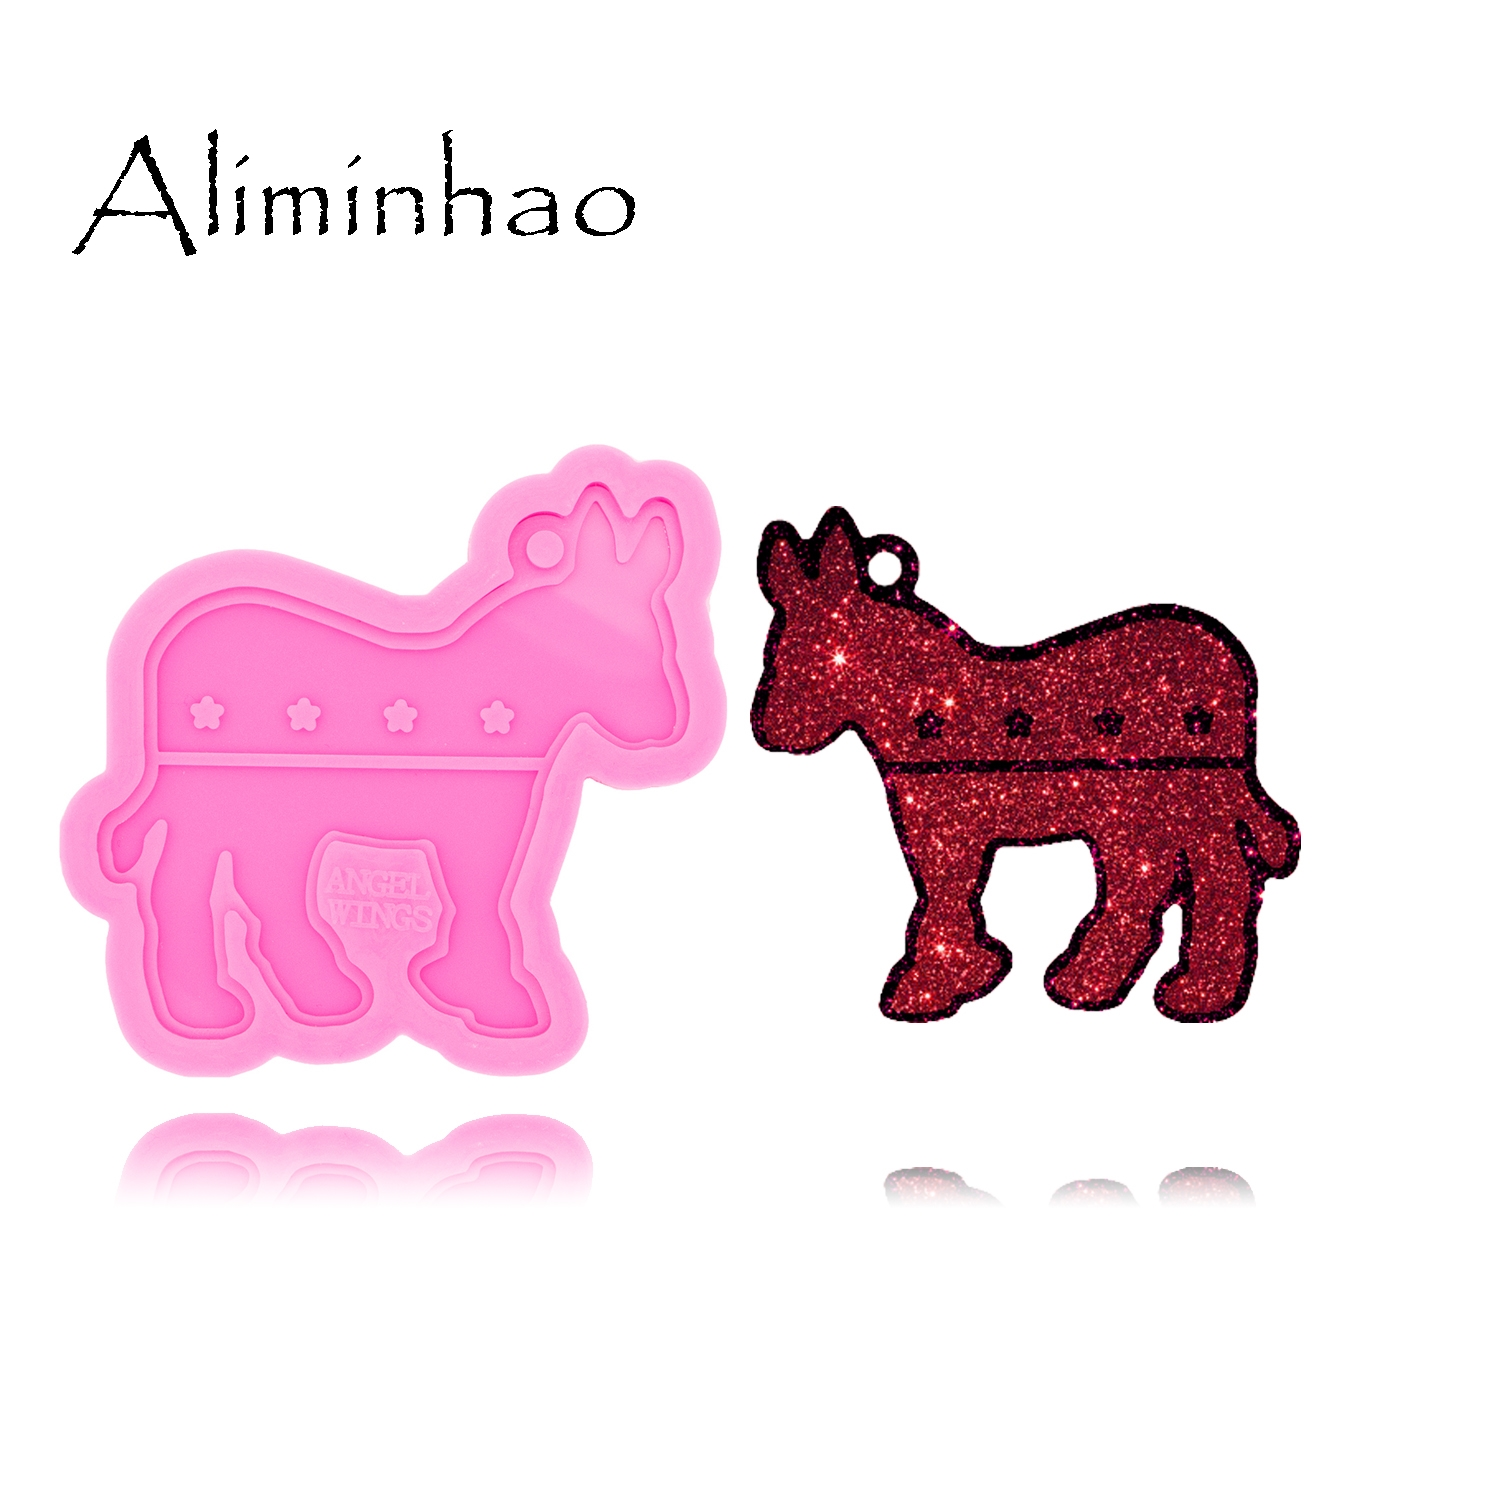 DY0389 Donkey Mold Decoration Keychains Mould Resin Silicone Epoxy For Jewelry Shiny Glossy Finish Aliminhao Suitable Polymer|Cake Molds| |  -